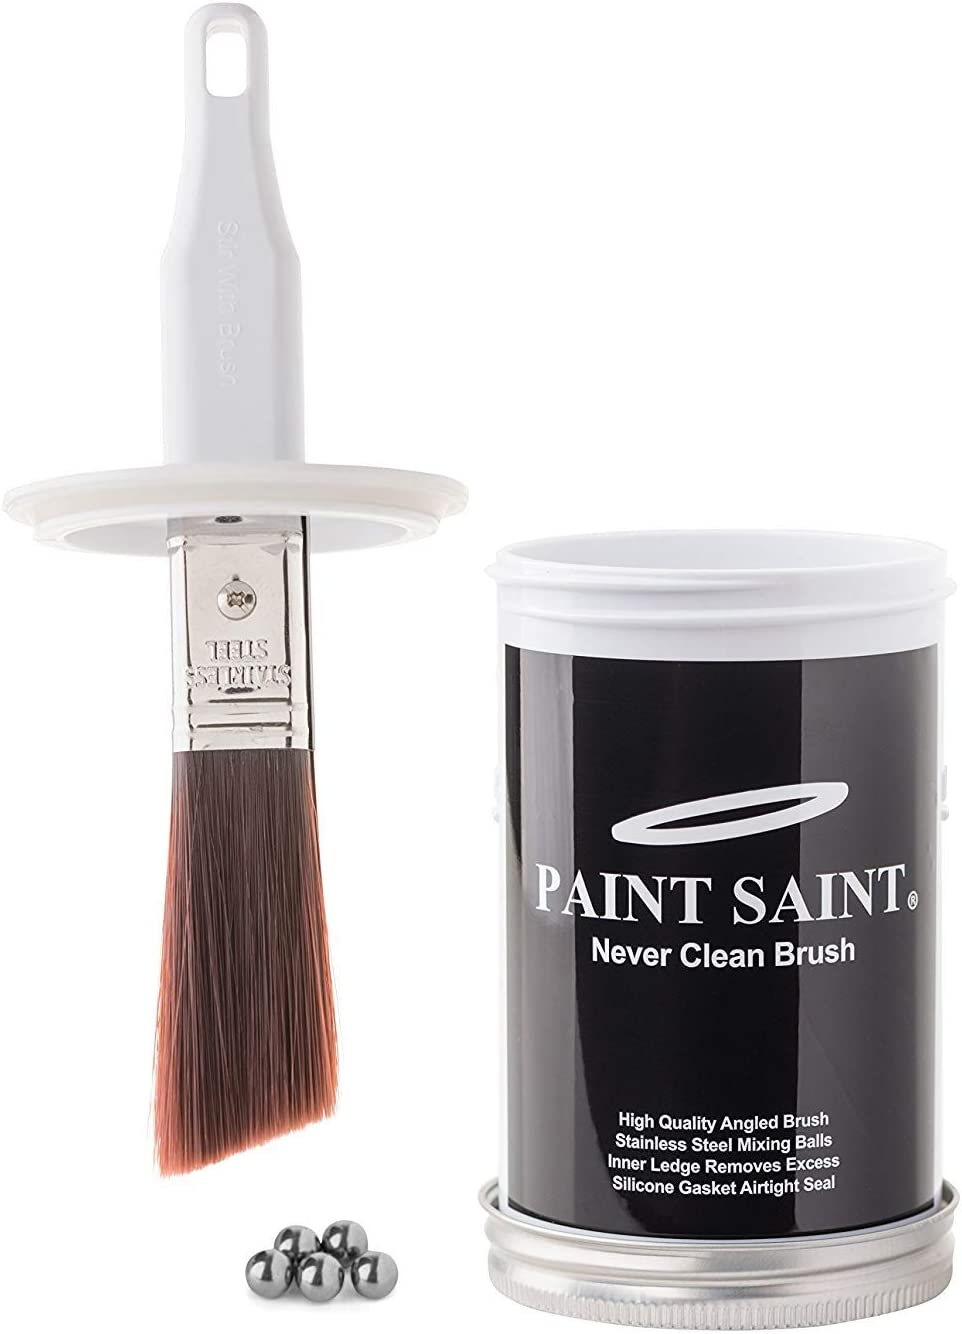 My Paint Saint (1pack) - New Improved Version Small Angled Sash Brush - The Ultimate Paint Touch Up Kit - Perfect for Homeowners, Businesses, Offices, Hotels, Retail, Churches, and Schools